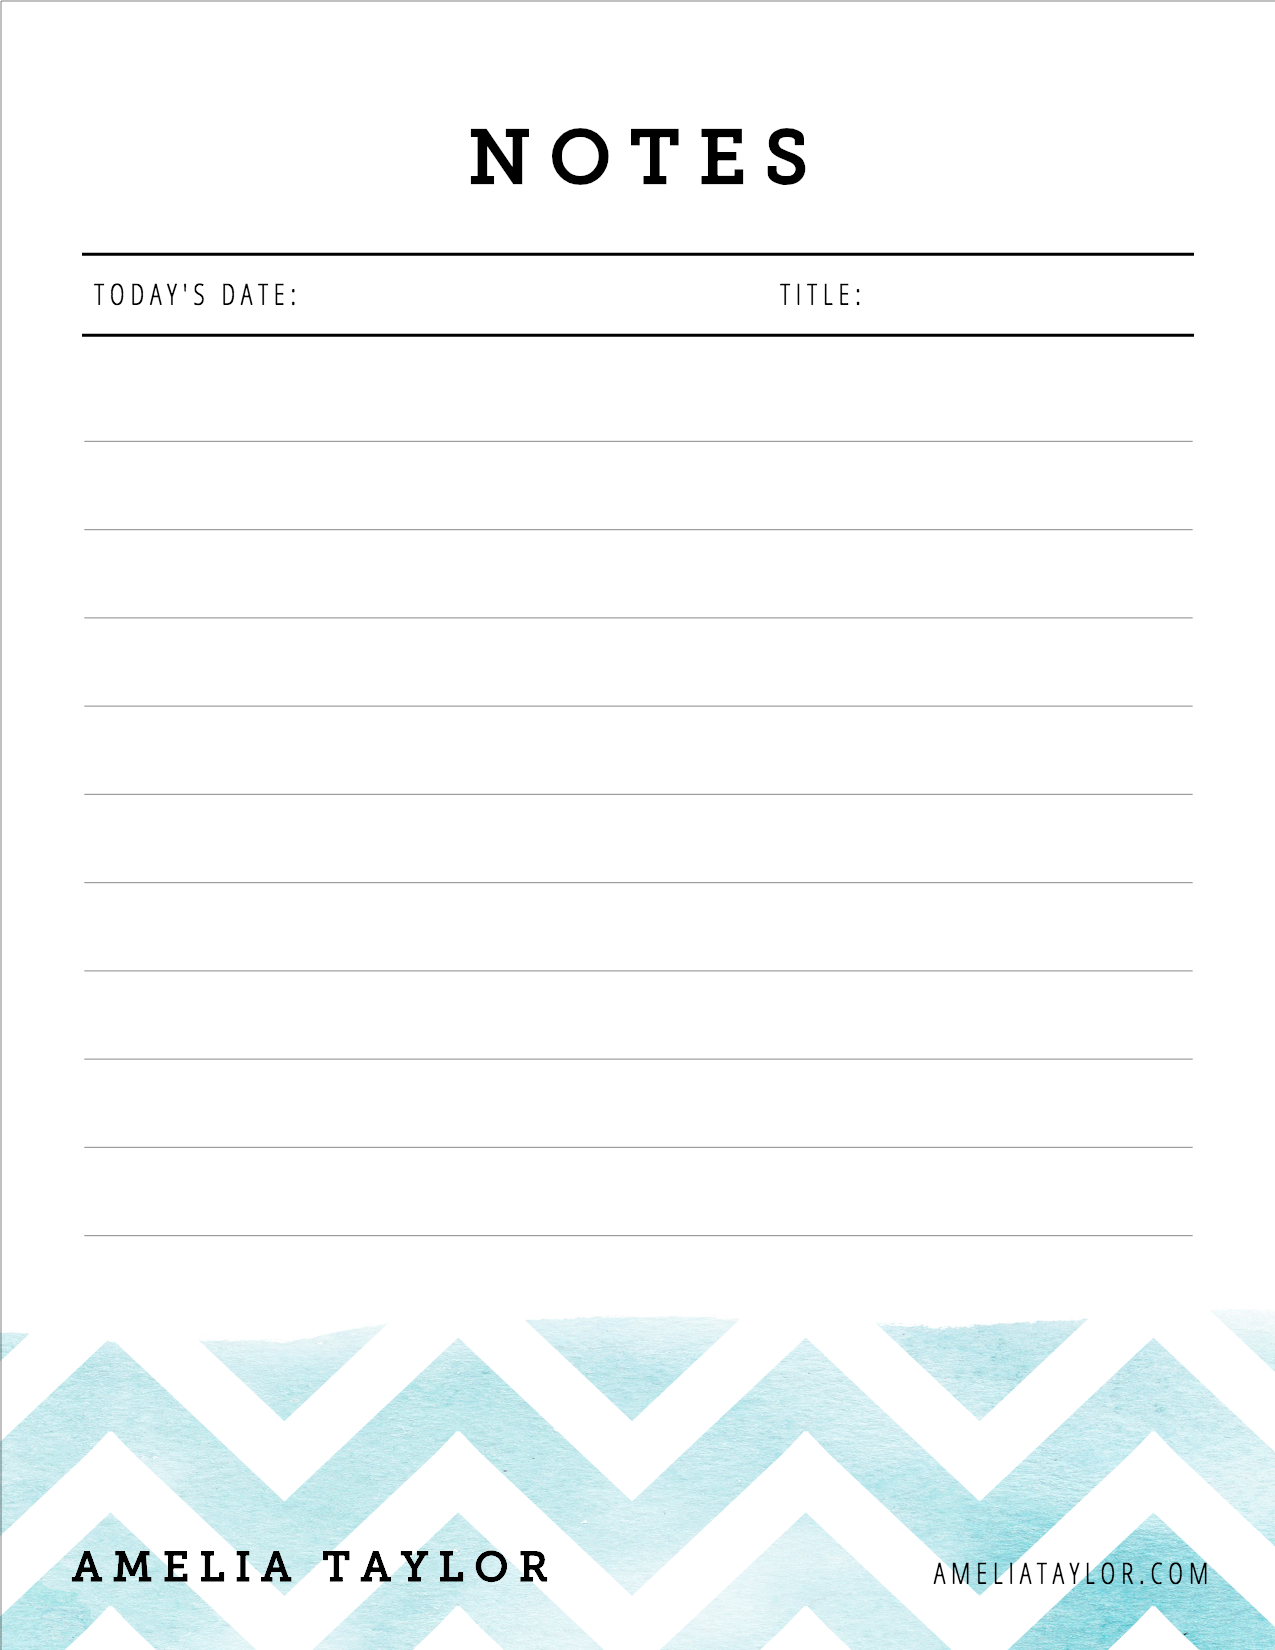 Free Notepads Templates Design Your Notepads From Jukebox